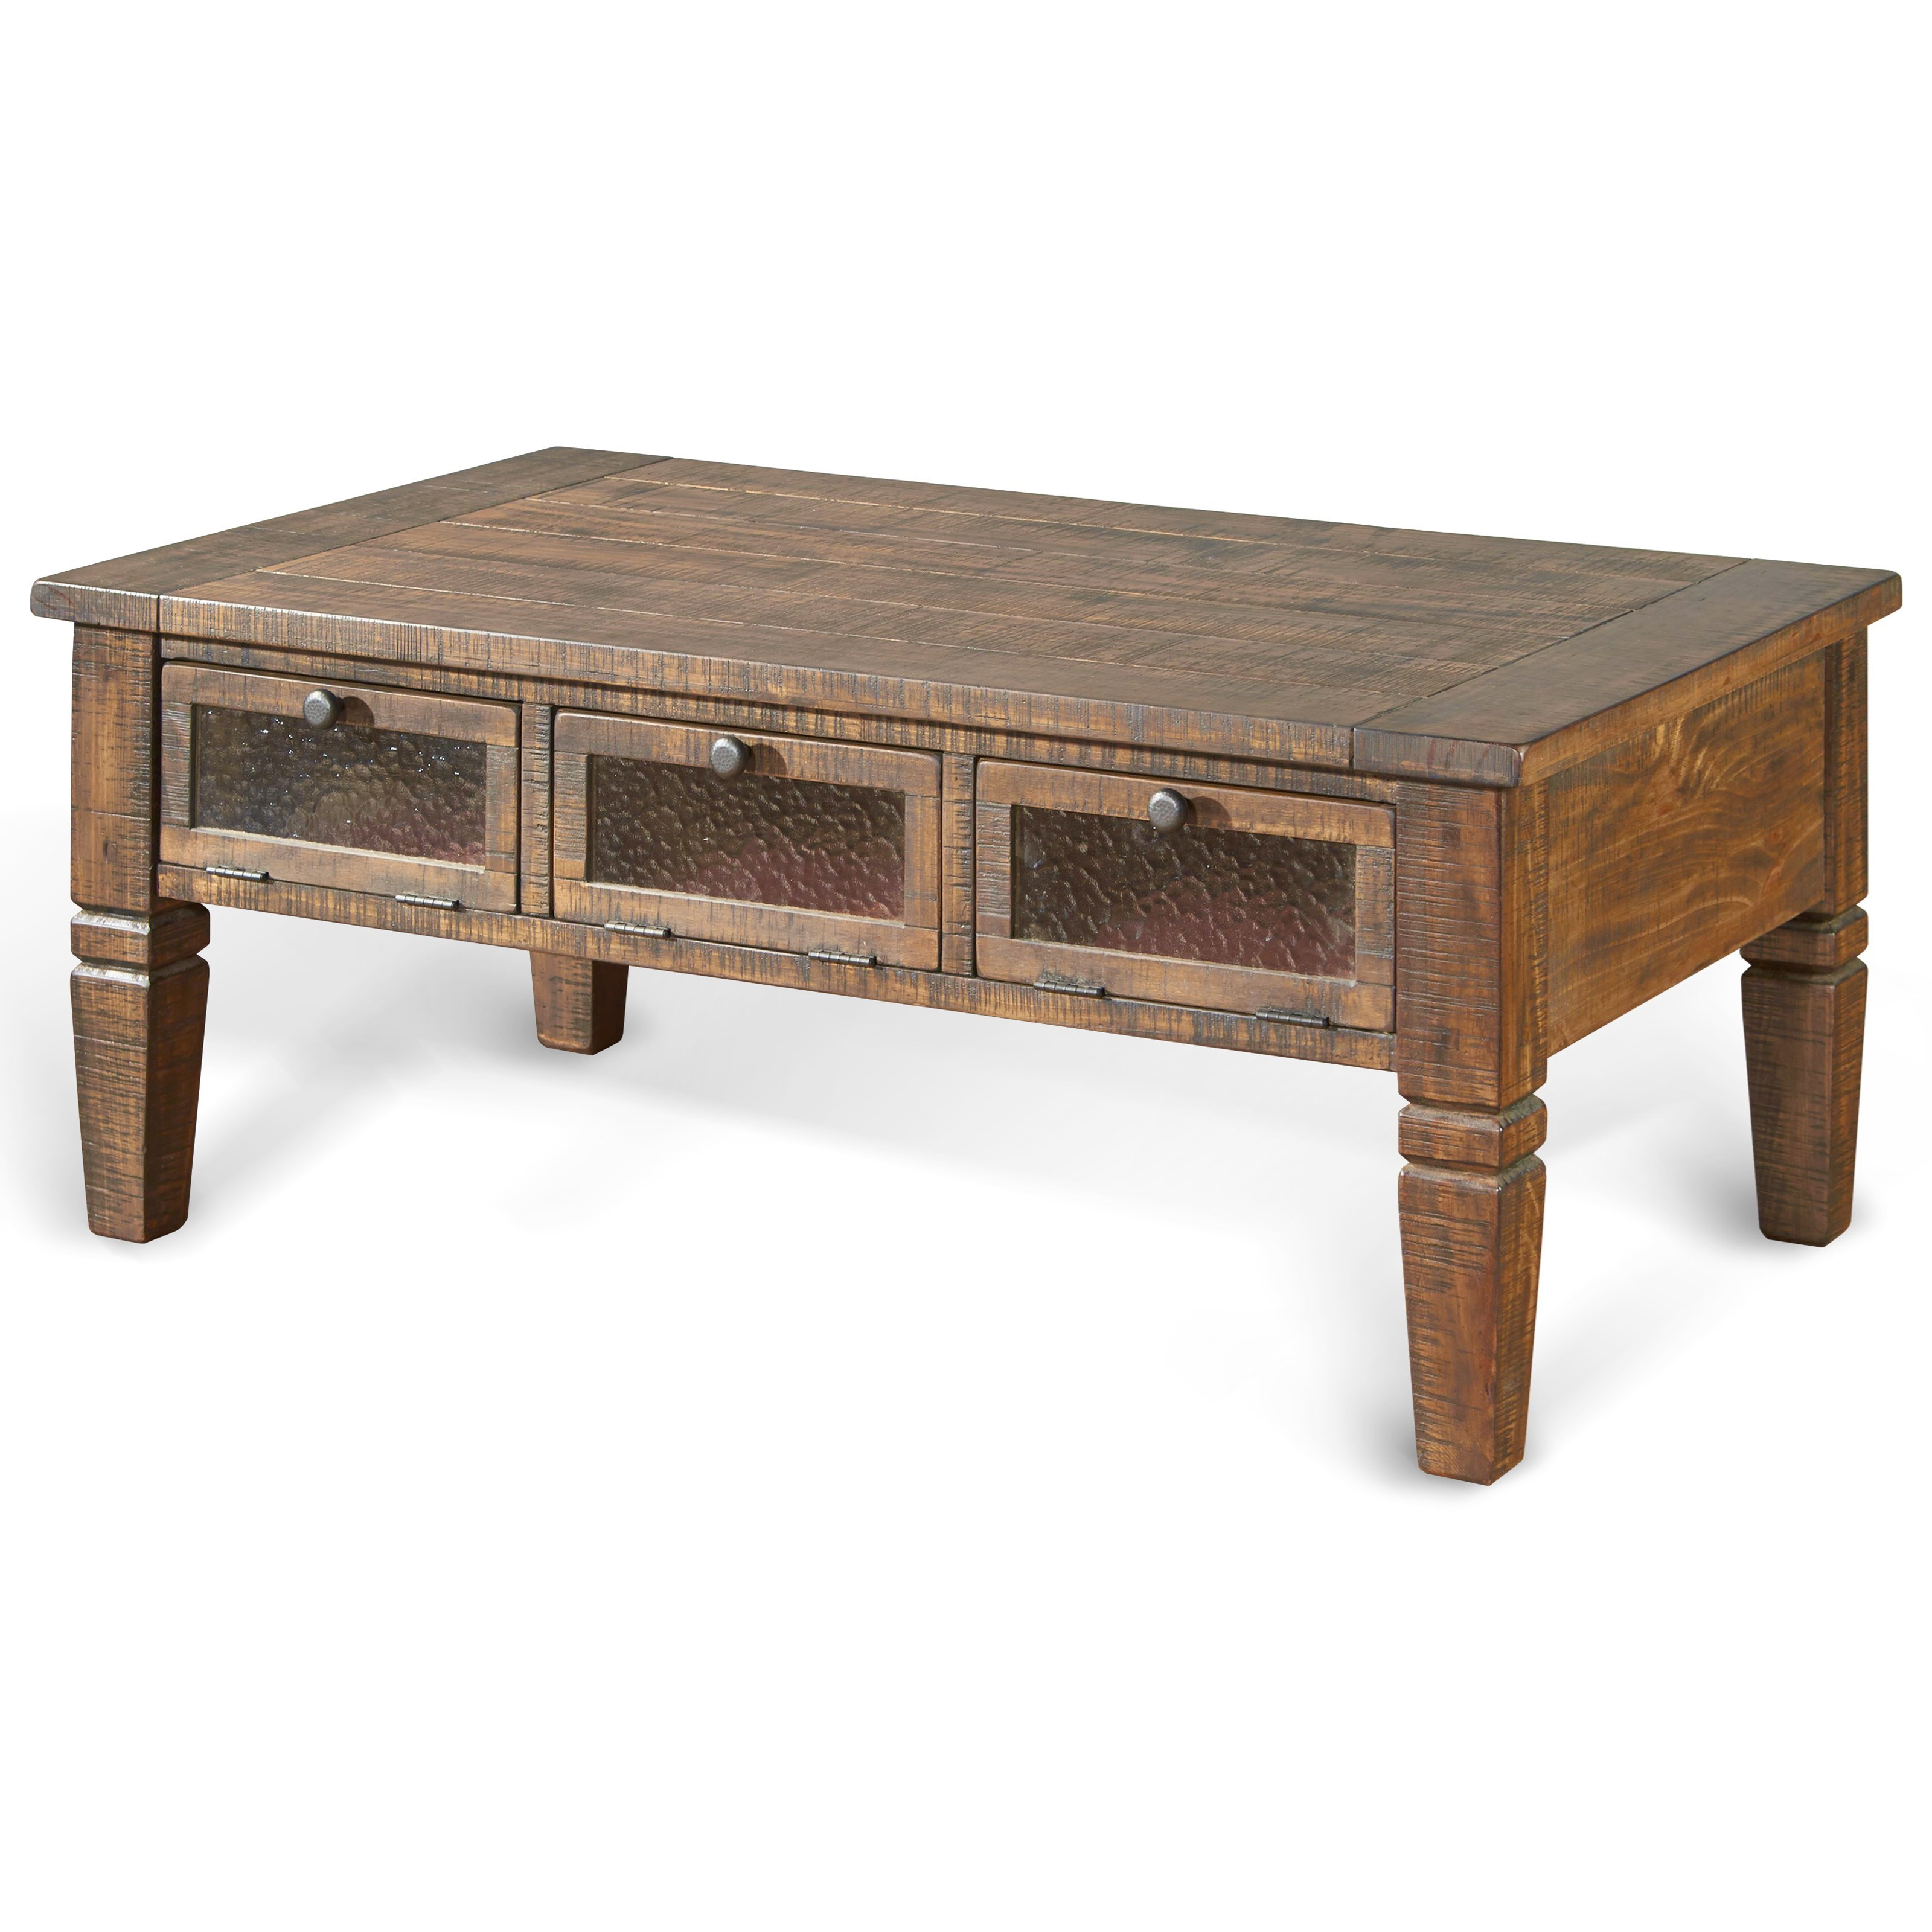 Glass Coffee Tables New Zealand: Sunny Designs Homestead 3252TL-C Rustic Pine Coffee Table